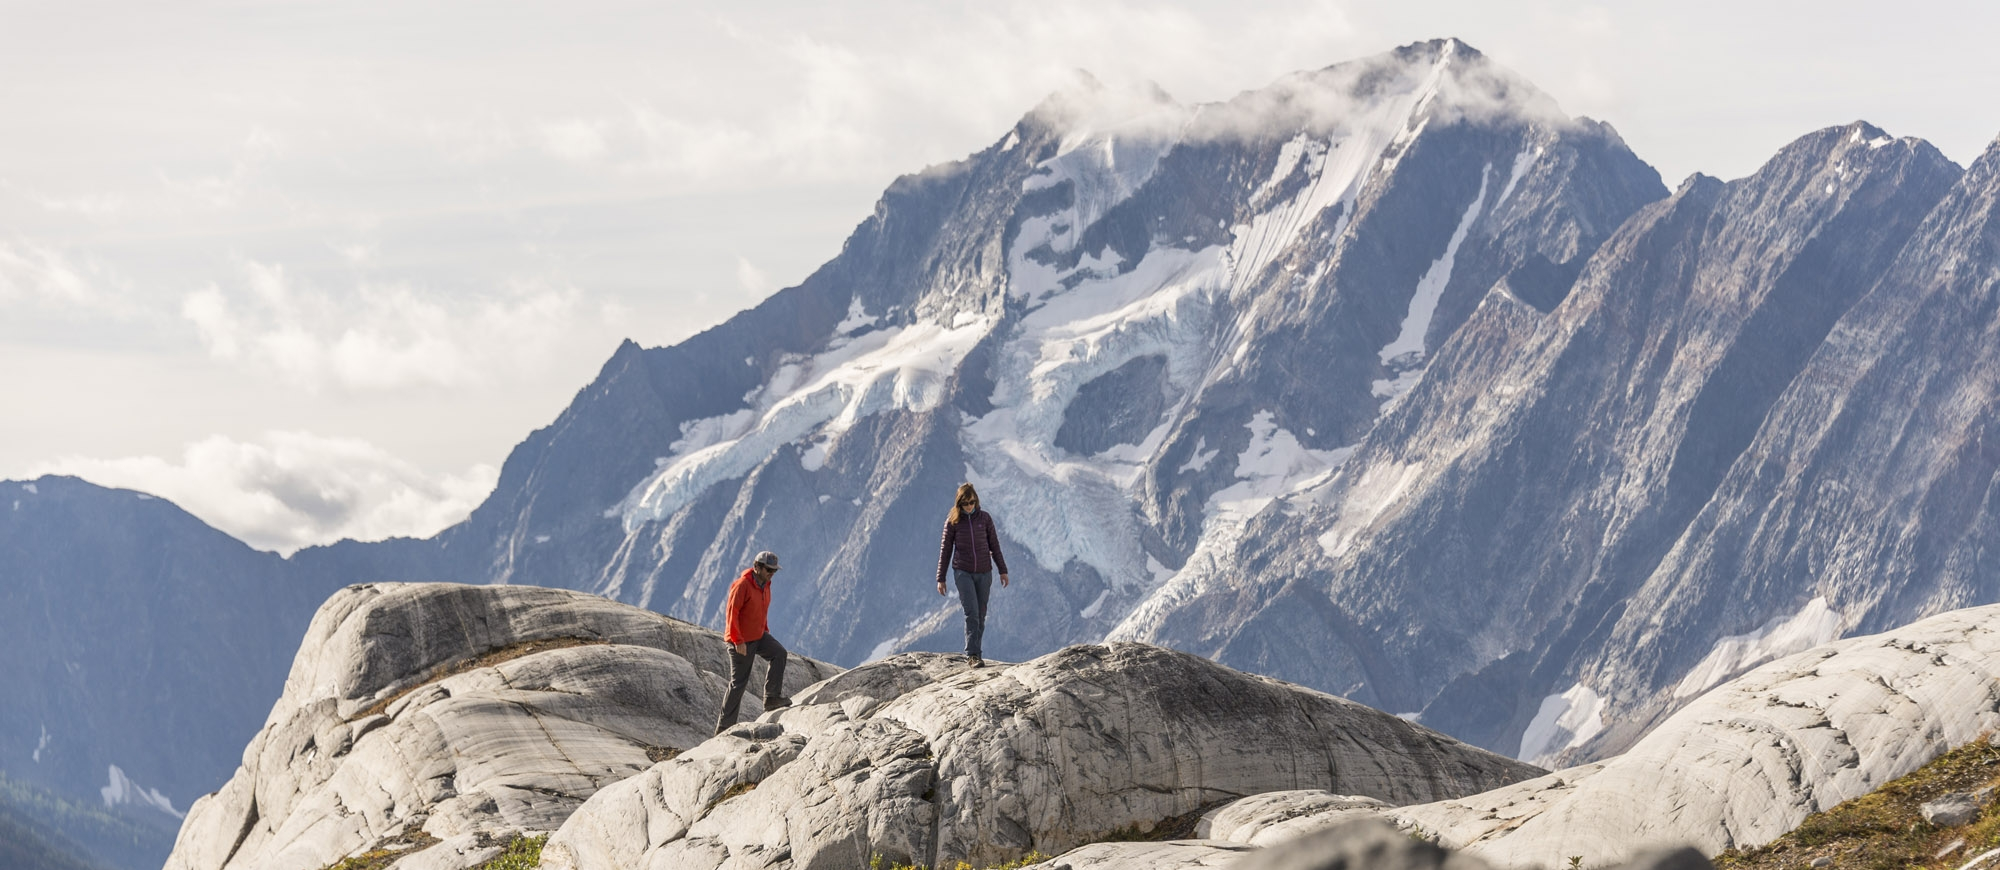 Two hikers at MacBeth Icefield in the Purcell Mountains near Nelson and Kaslo, BC.